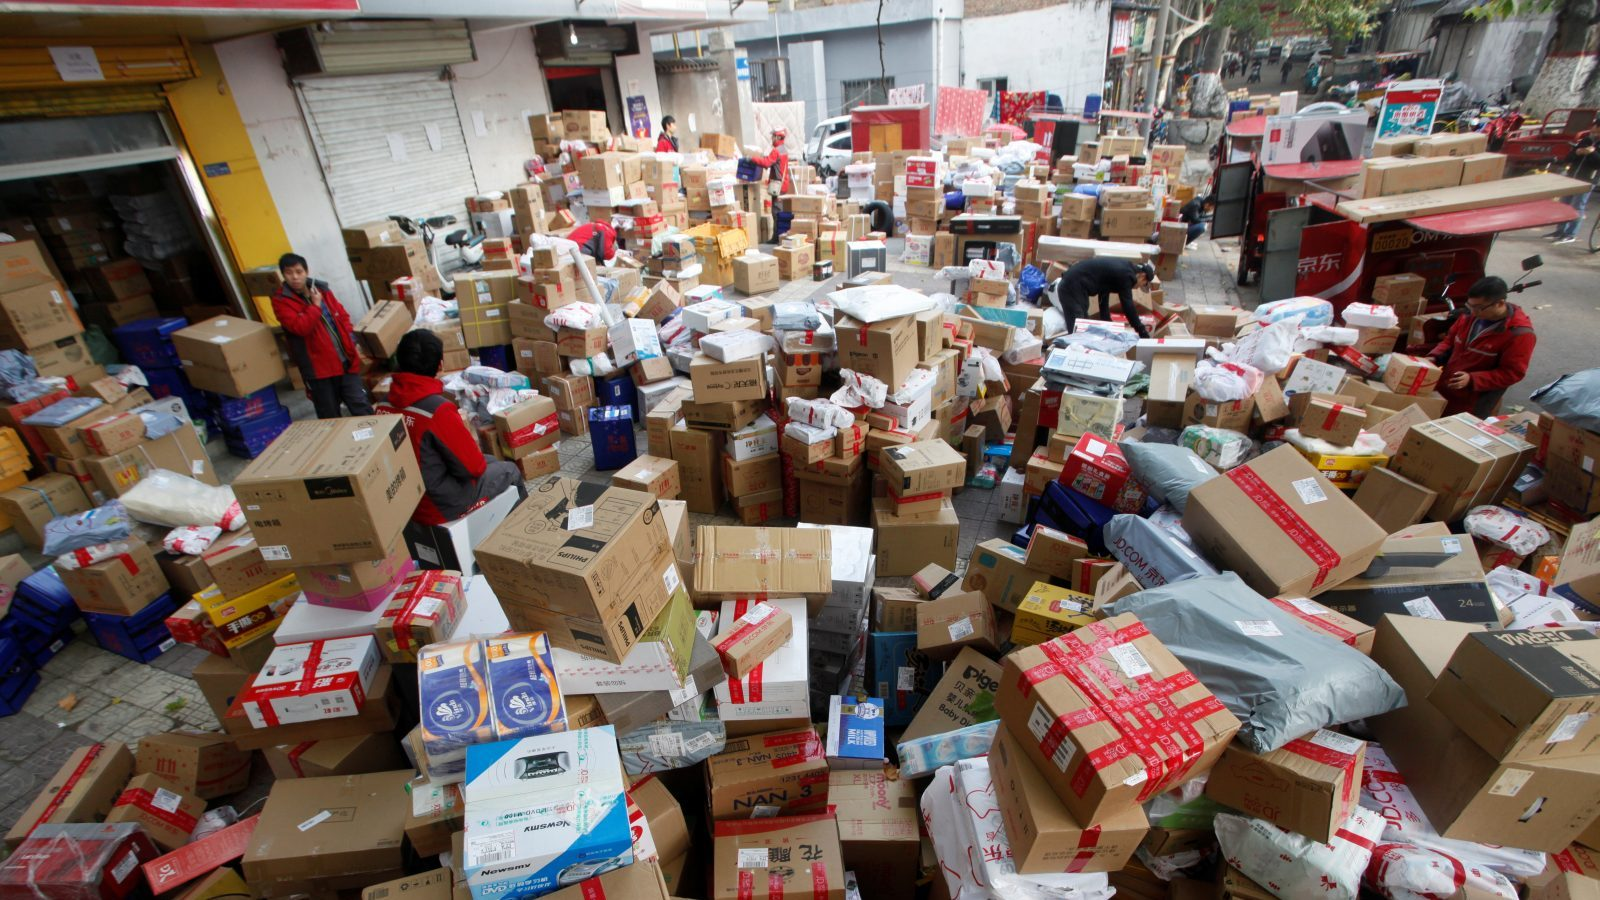 Employees sort boxes and parcels at a JD.com logistic station, after the Singles Day online shopping festival, in Xi'an, Shaanxi province, China November 13, 2017. Picture taken November 13, 2017. REUTERS/Stringer ATTENTION EDITORS - THIS IMAGE WAS PROVIDED BY A THIRD PARTY. CHINA OUT. - RC1355F86170